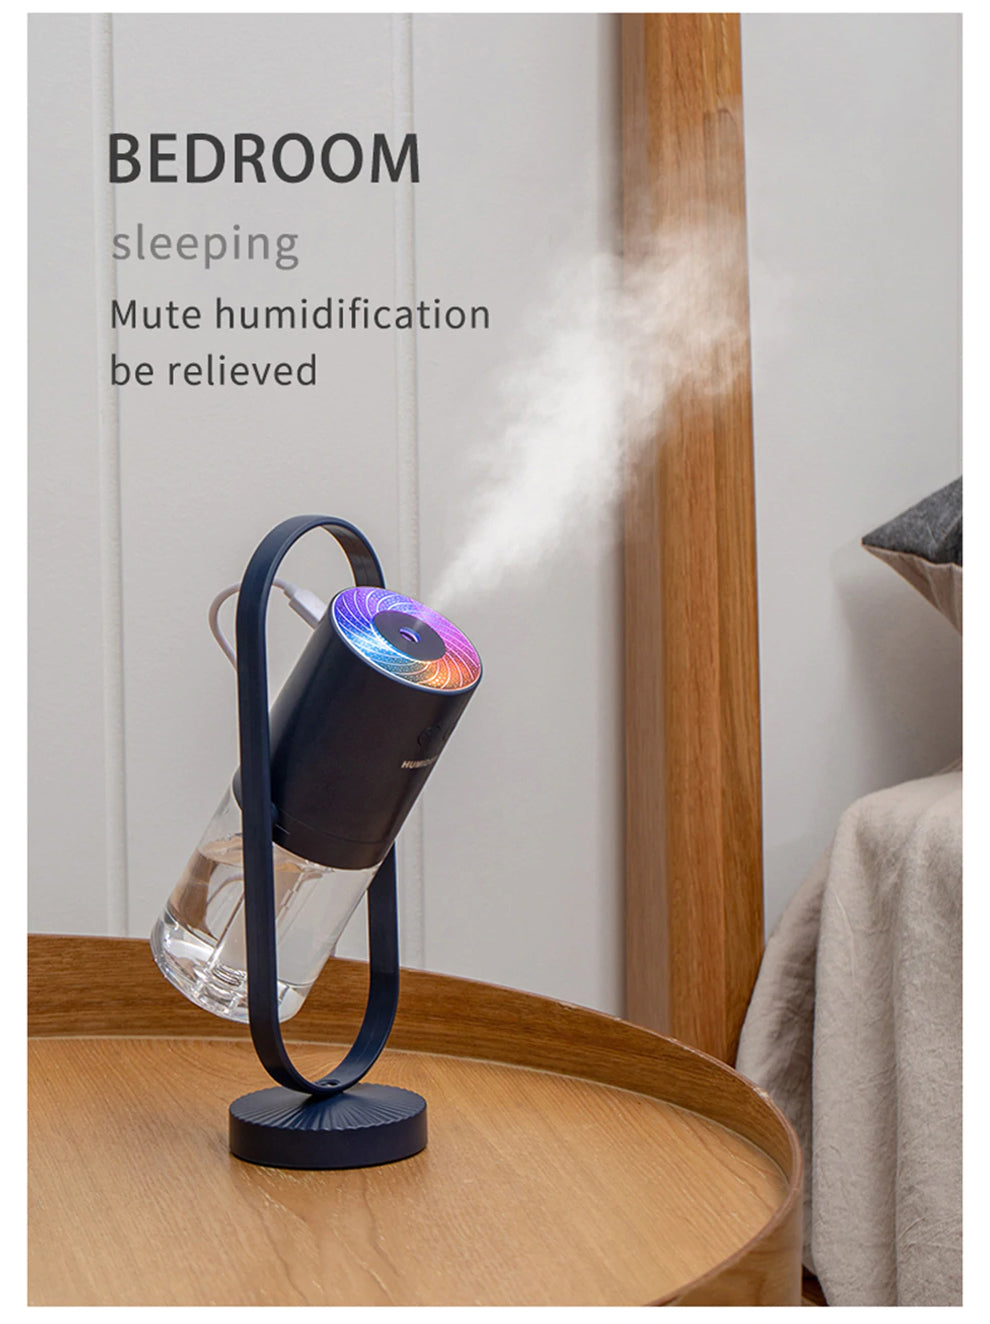 Relaxing-Bedroom-Navy-Blue-Humidifier